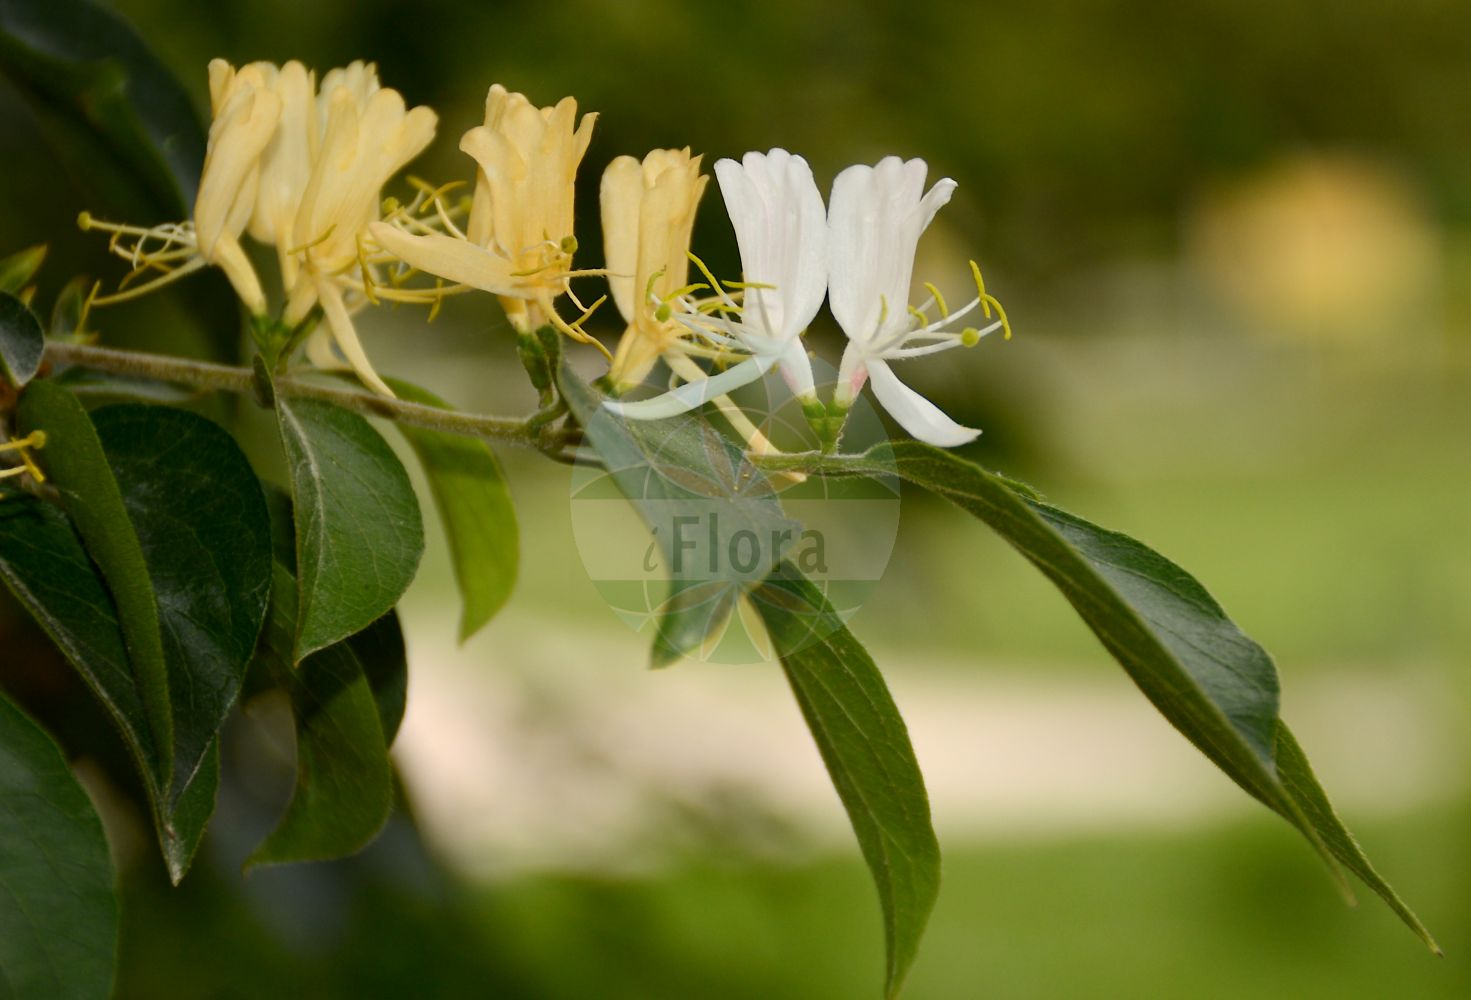 Foto von Lonicera maackii. Das Bild zeigt Blatt und Bluete. Das Foto wurde in Jardin des Plantes, Paris, Frankreich aufgenommen. ---- Photo of Lonicera maackii.The image is showing leaf and flower.The picture was taken in Jardin des Plantes, Paris, France.(Lonicera maackii,Xylosteon maackii,Lonicera,Heckenkirsche,Honeysuckle,Caprifoliaceae,Geissblattgewaechse,Honeysuckle family,Blatt,Bluete,leaf,flower)